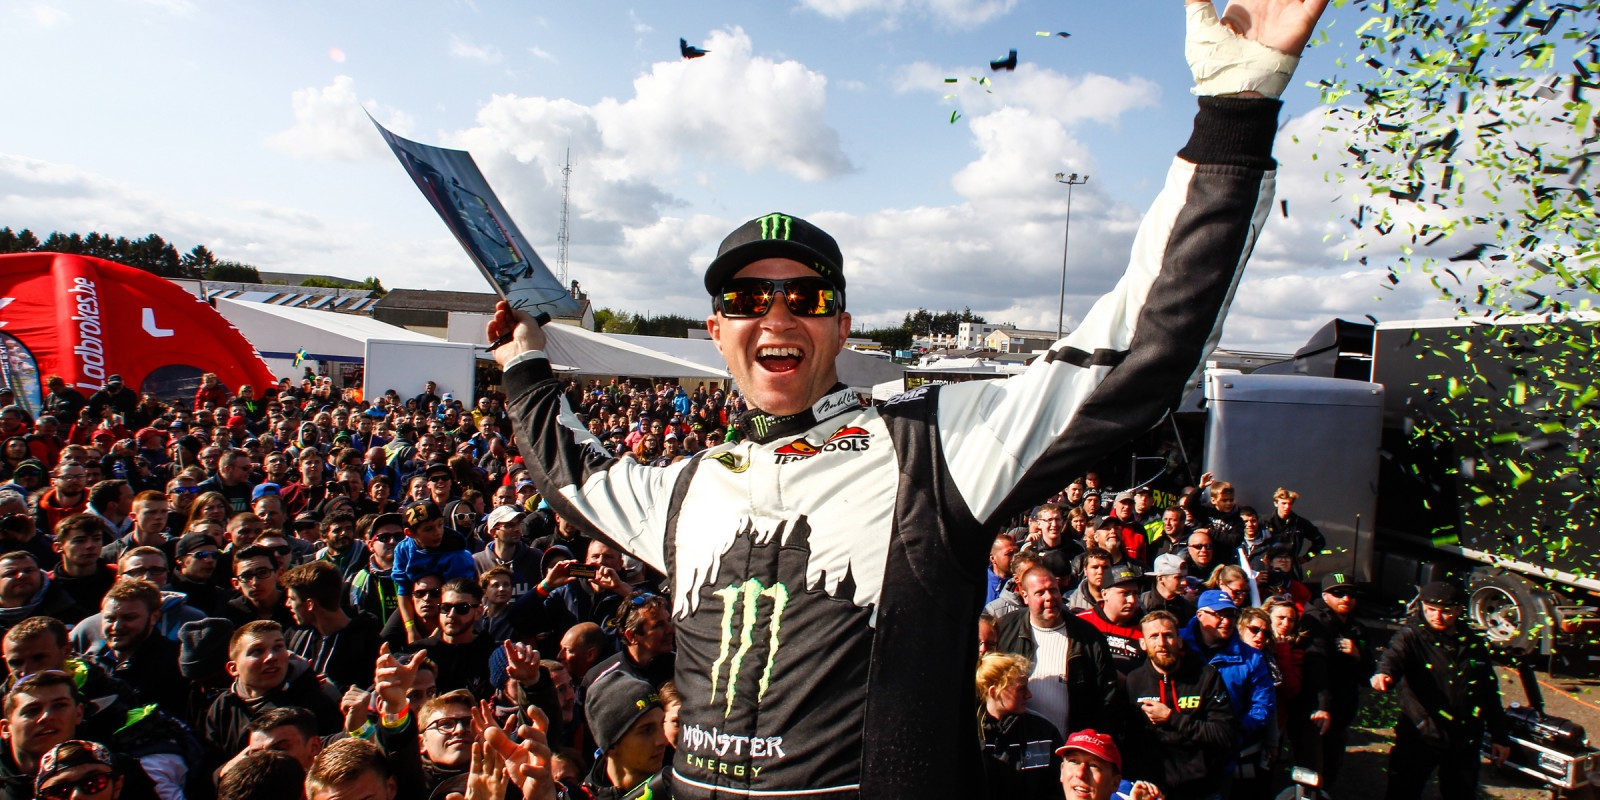 Images from Sunday at round three of the 2016 FIA World Rallycross Championship in Belgium